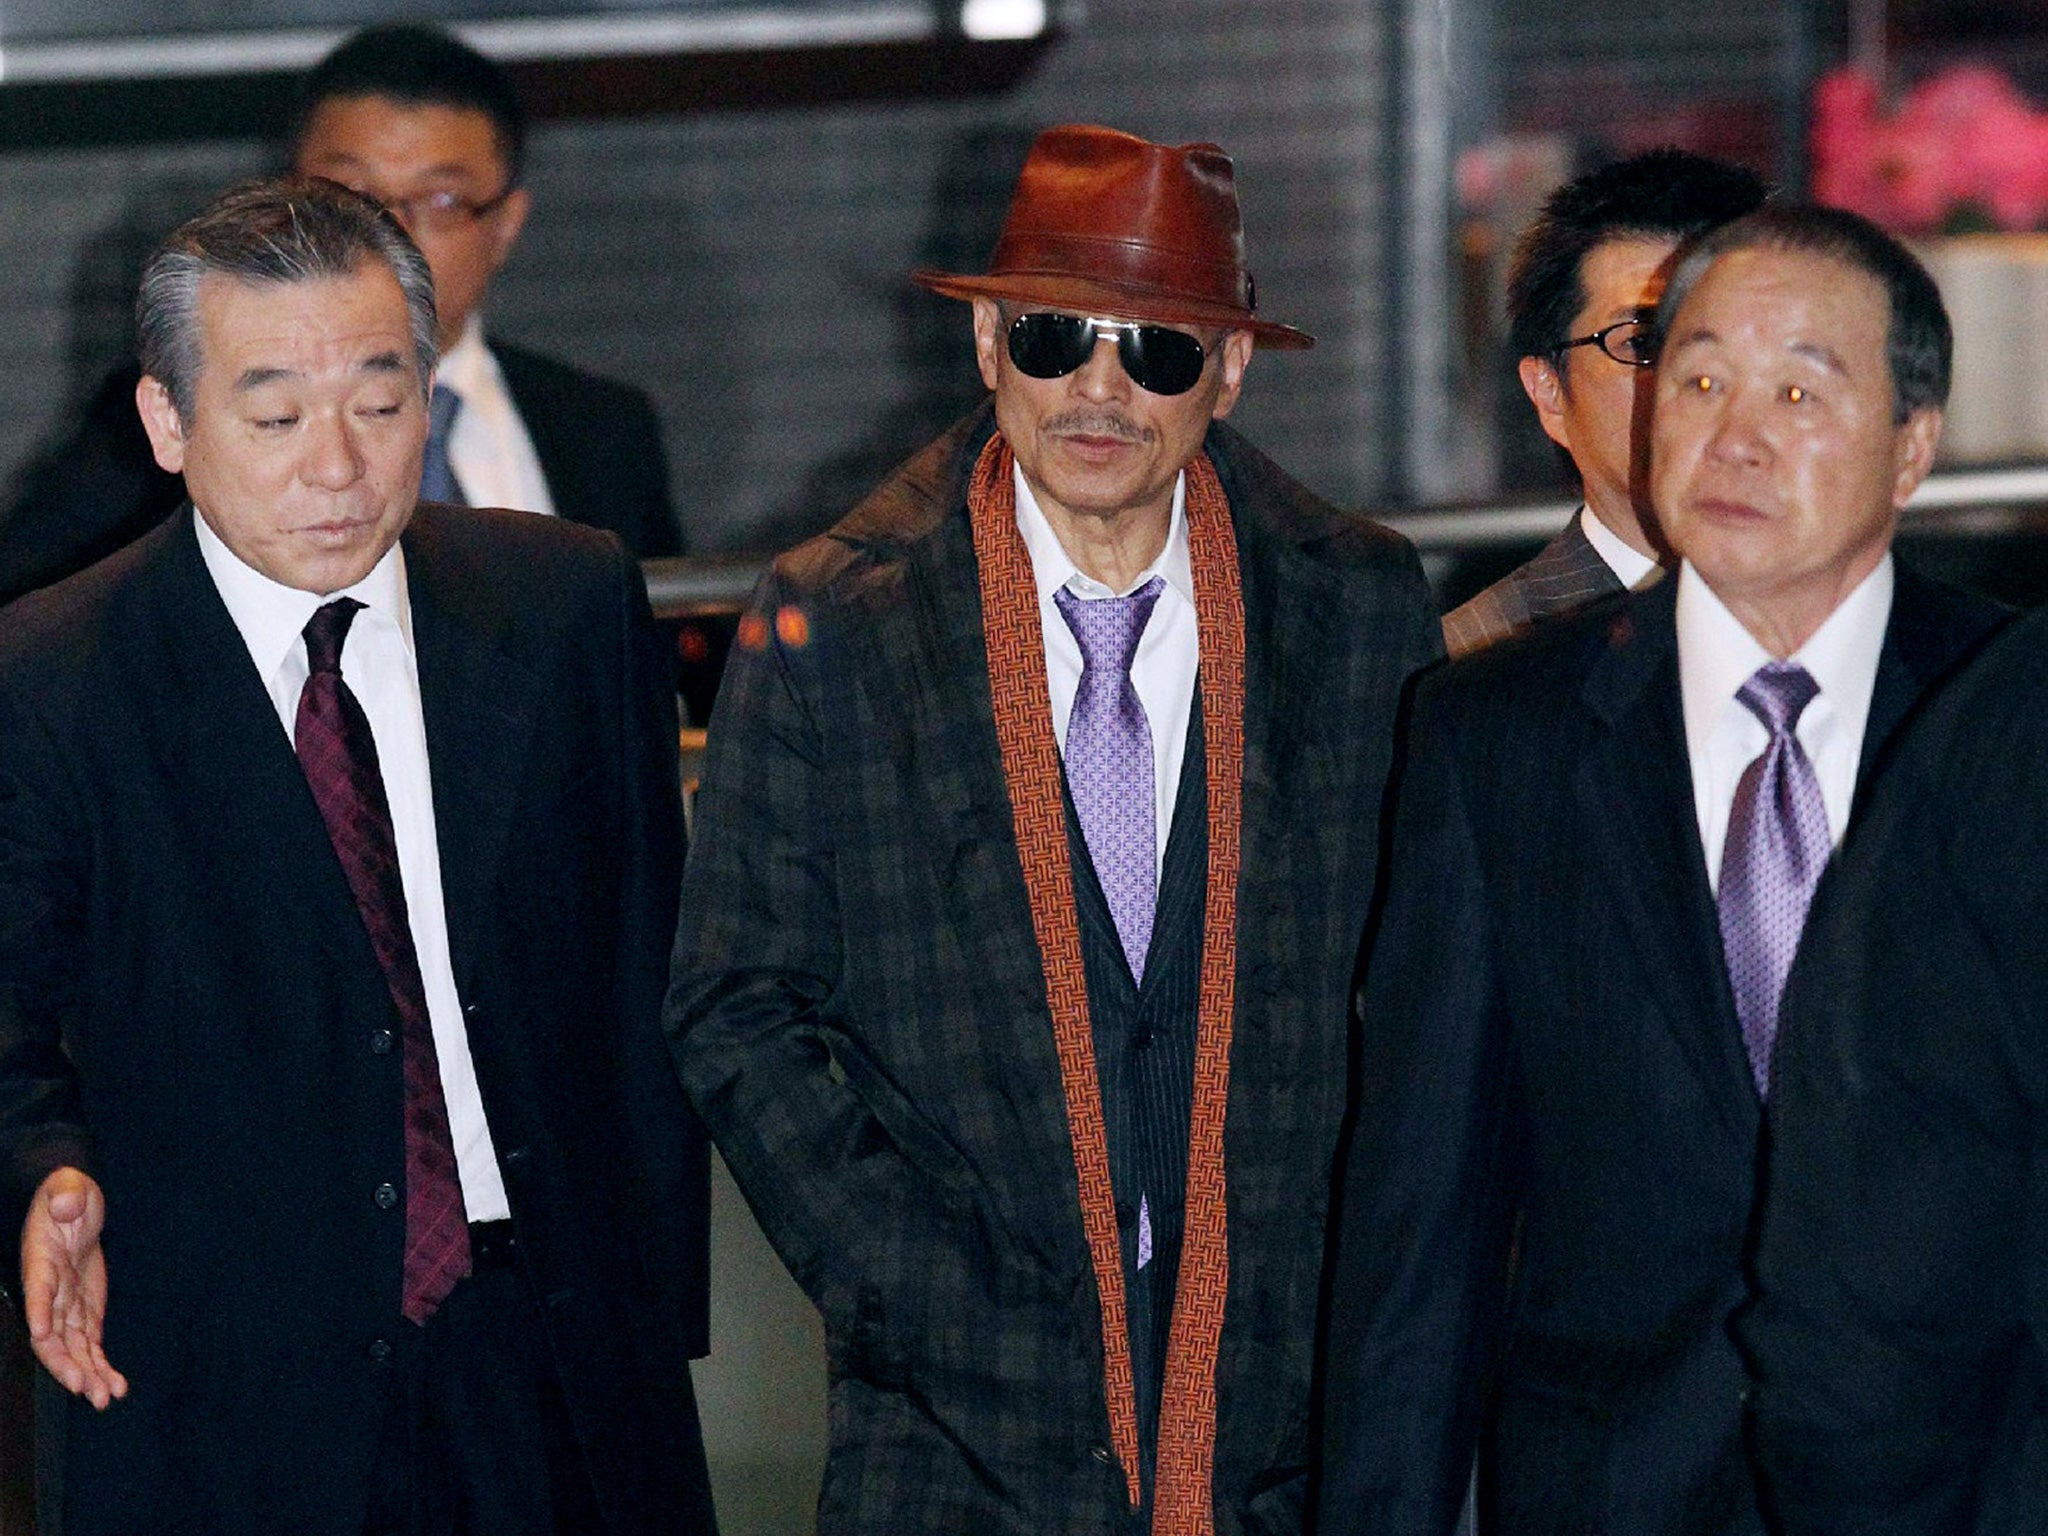 famous yakuza leaders